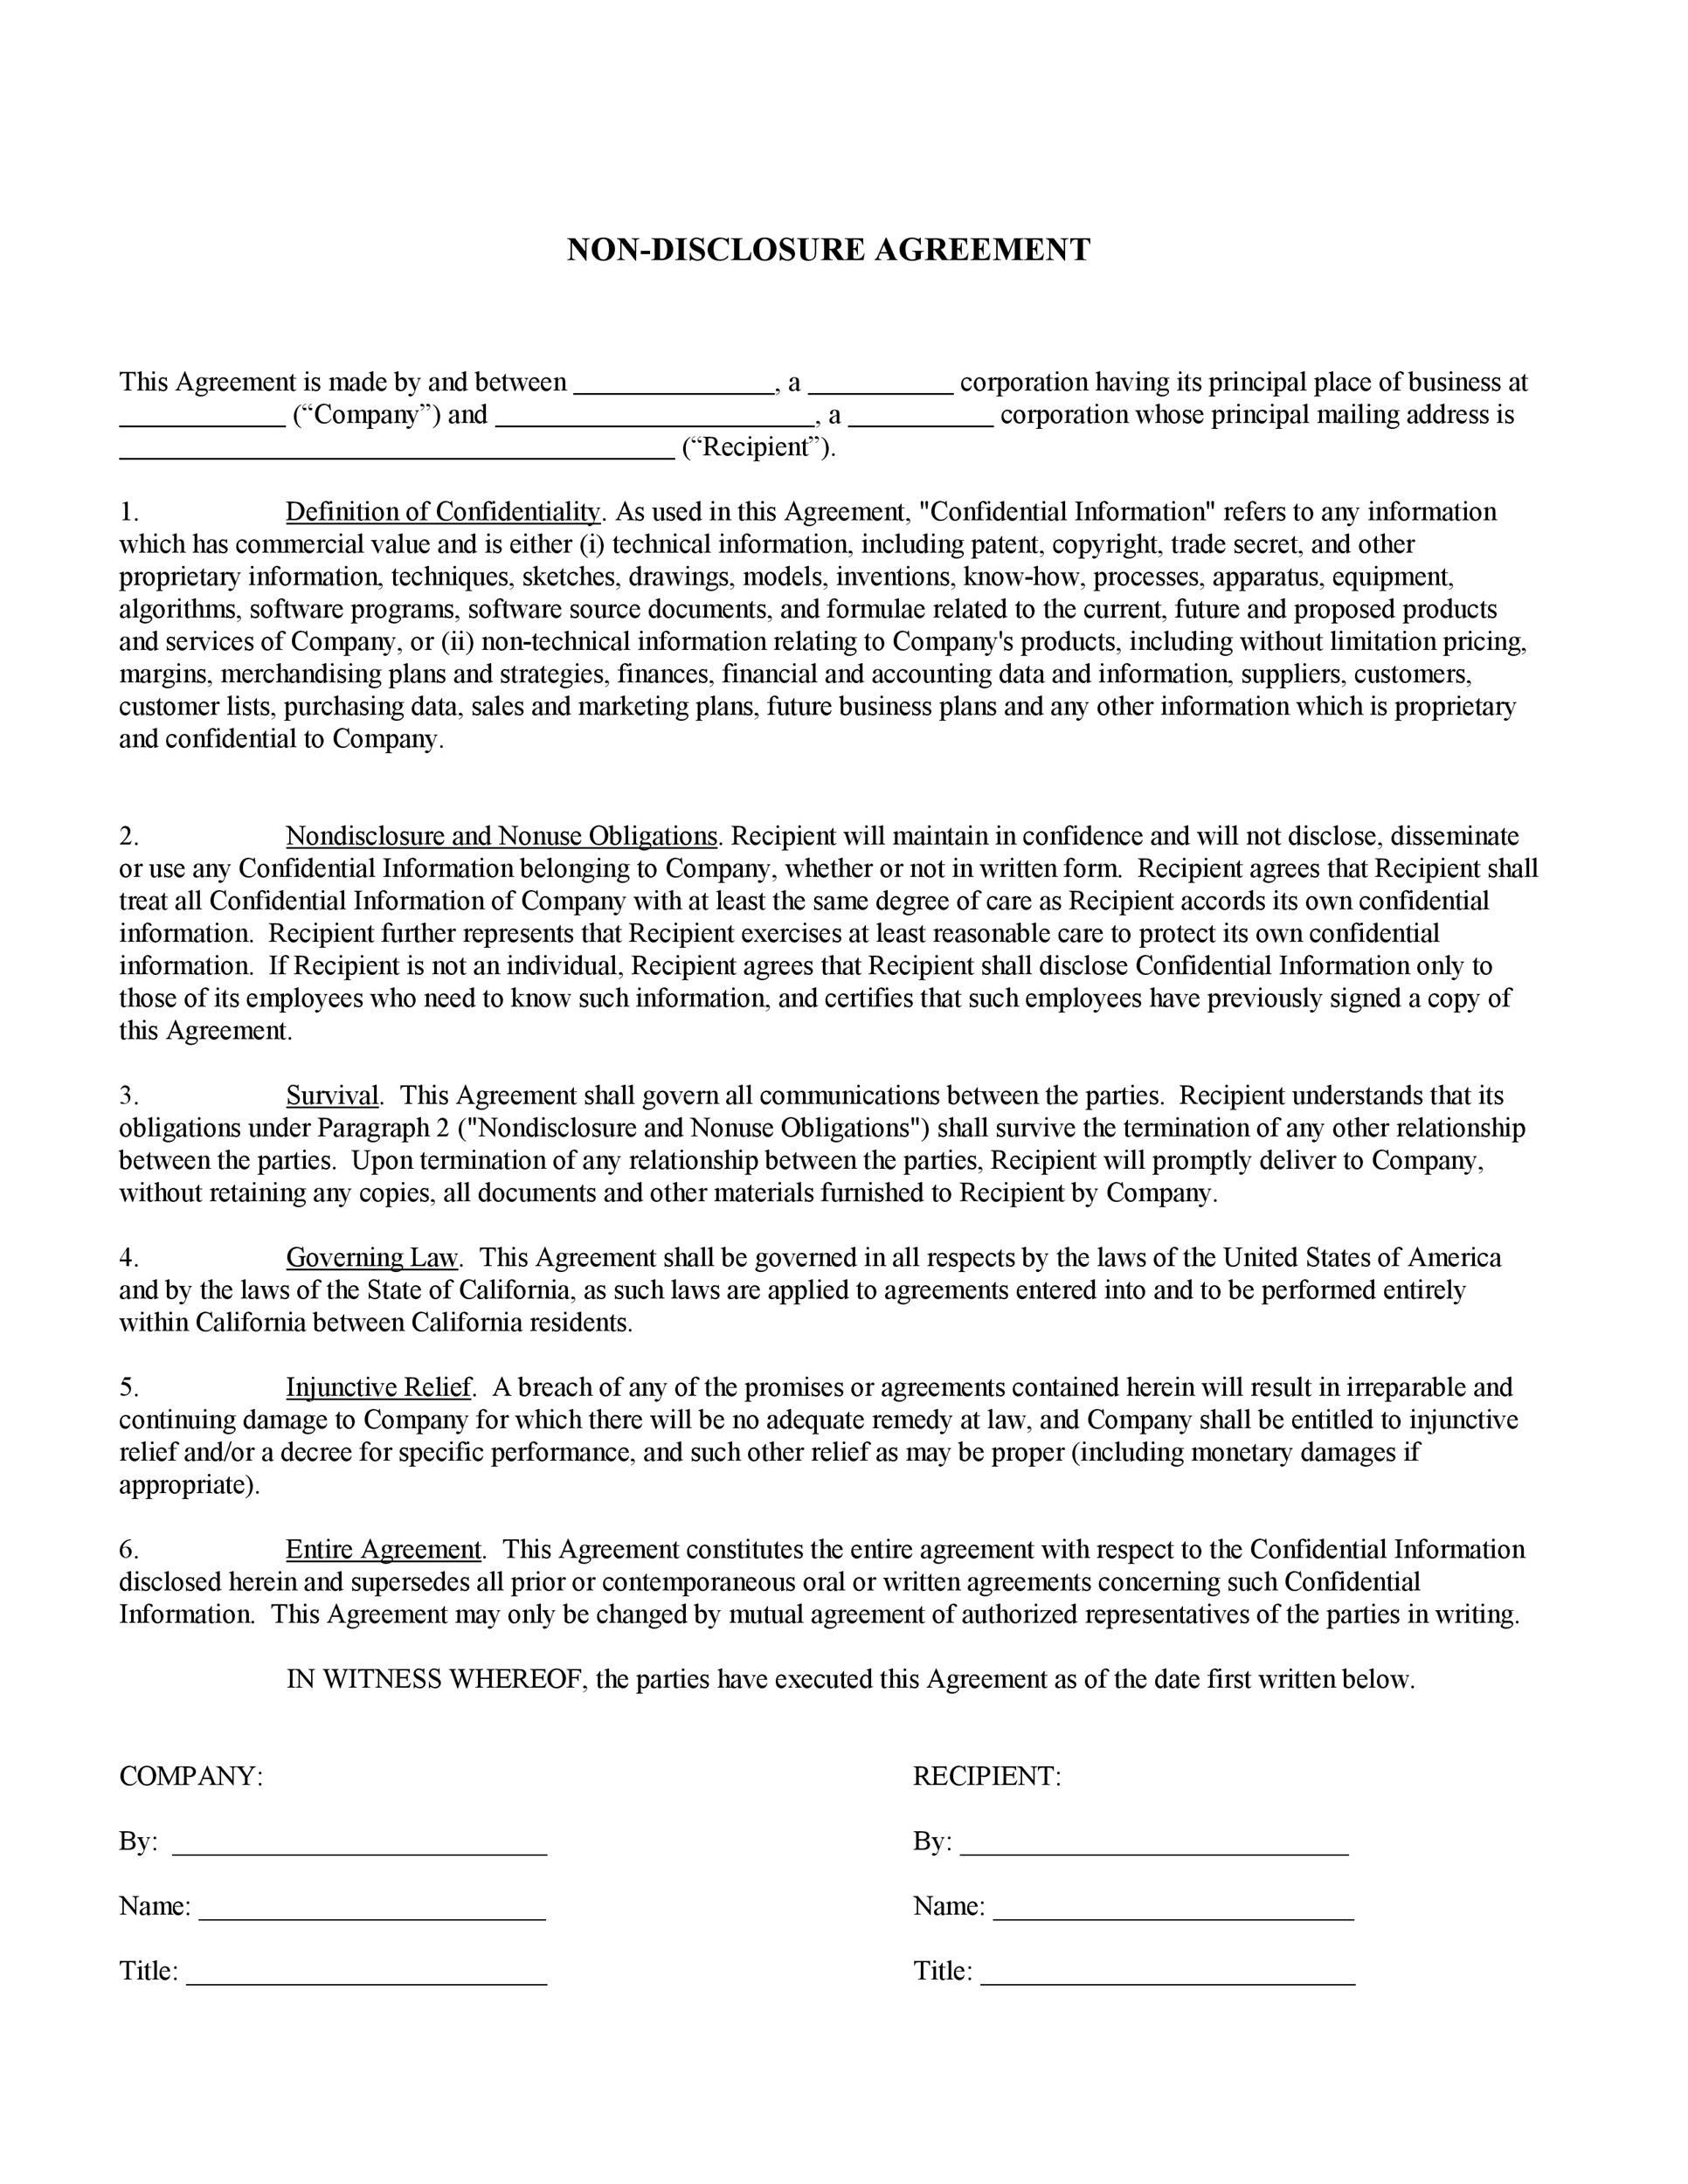 It can be used in a wide range of scenarios to protect information from being exposed, including discussing business mergers, pitching newly developed technology to investors, or the hiring of new employees that will have access to highly secret (and valuable) information. Short Non Disclosure Agreement Template